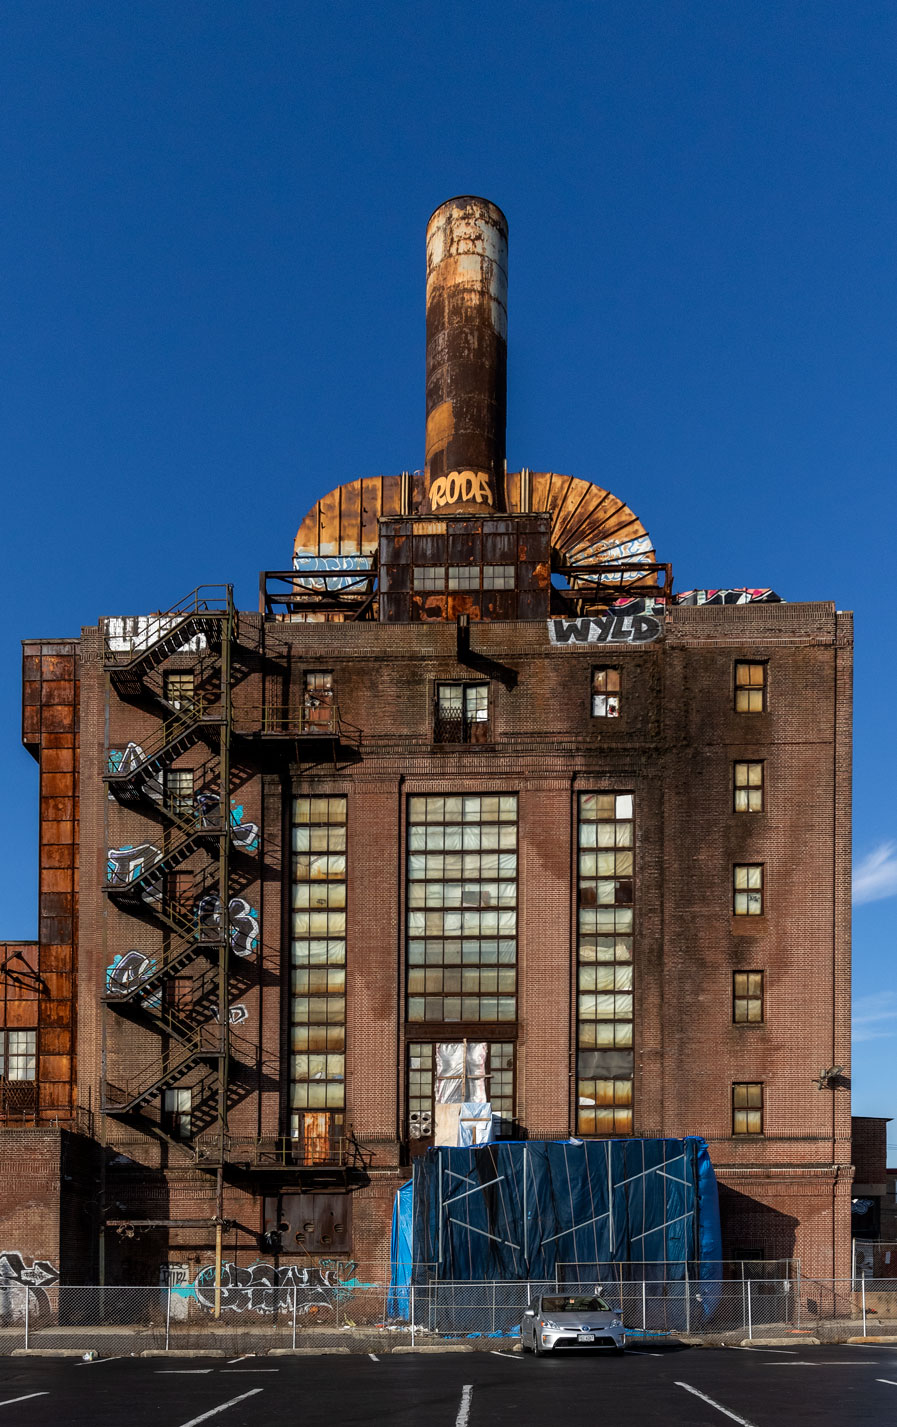 Steam Generaton Plant in Philadelphia, PA